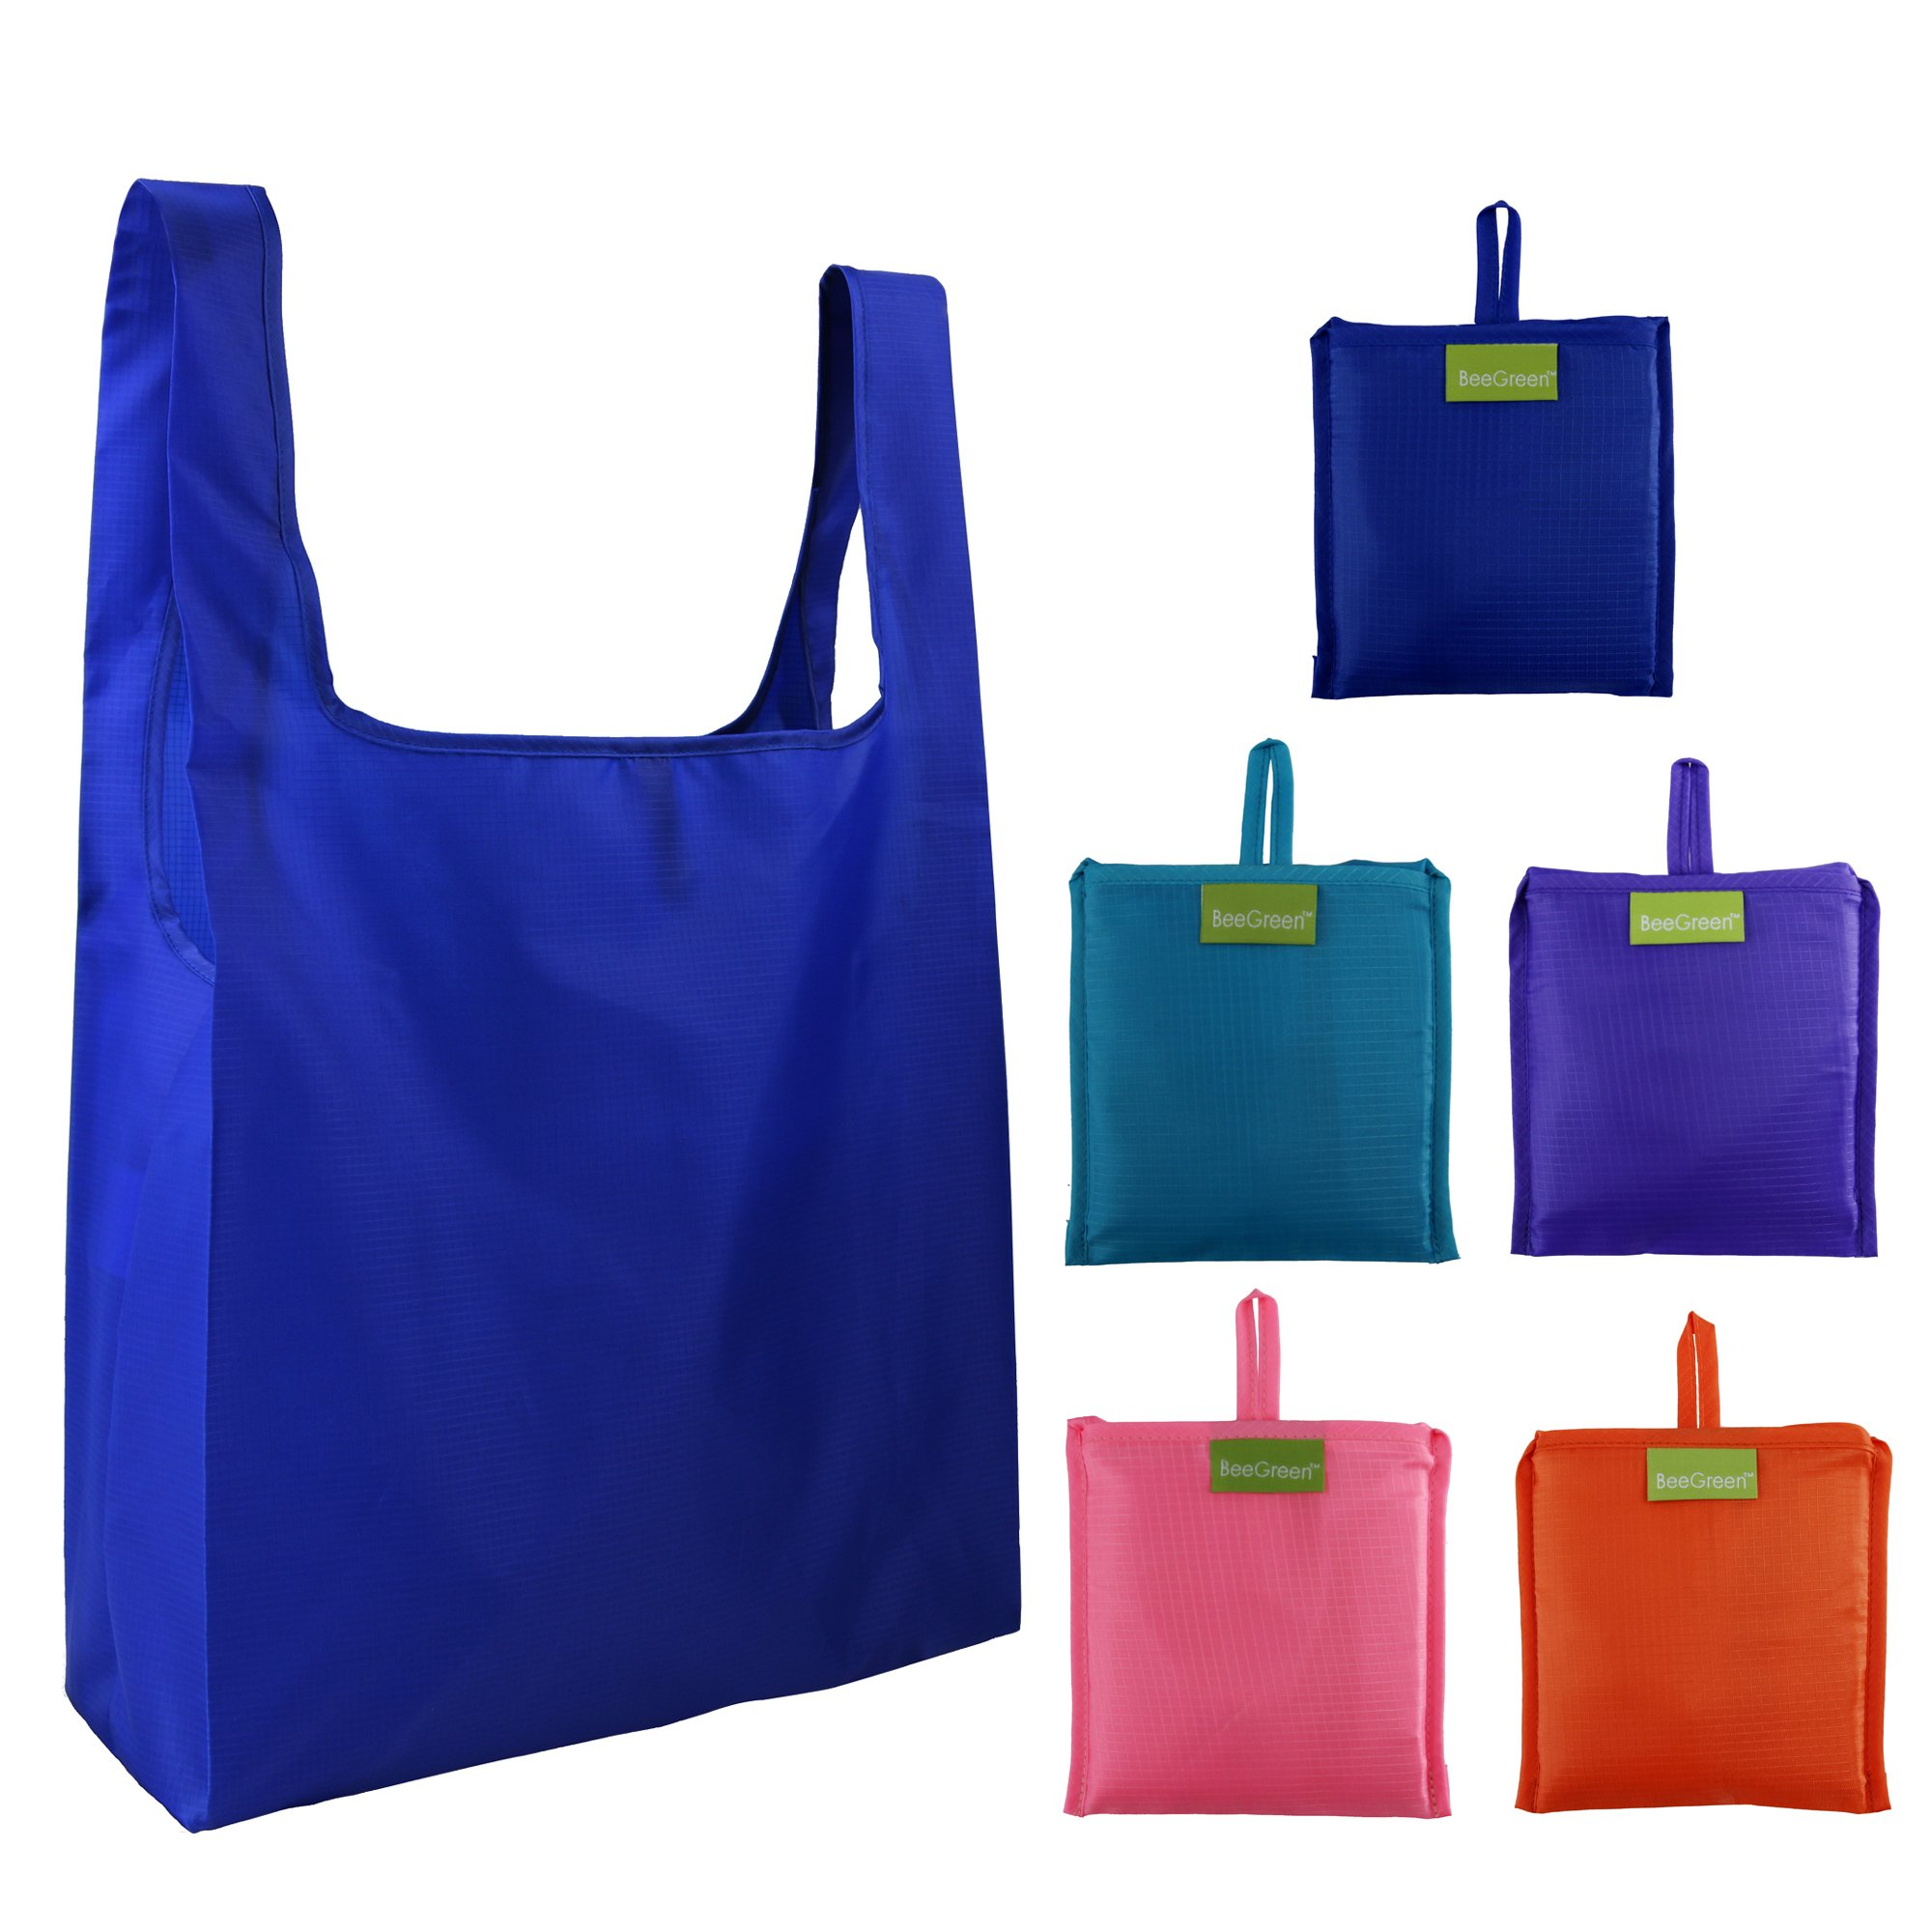 Reusable Grocery Bags Set of 5, Grocery Tote Foldable into Attached Pouch, Ripstop Polyester Reusable Shopping Bags, Washable, Durable and Lightweight (Royal,Purple,Pink,Orange,Teal) by BeeGreen